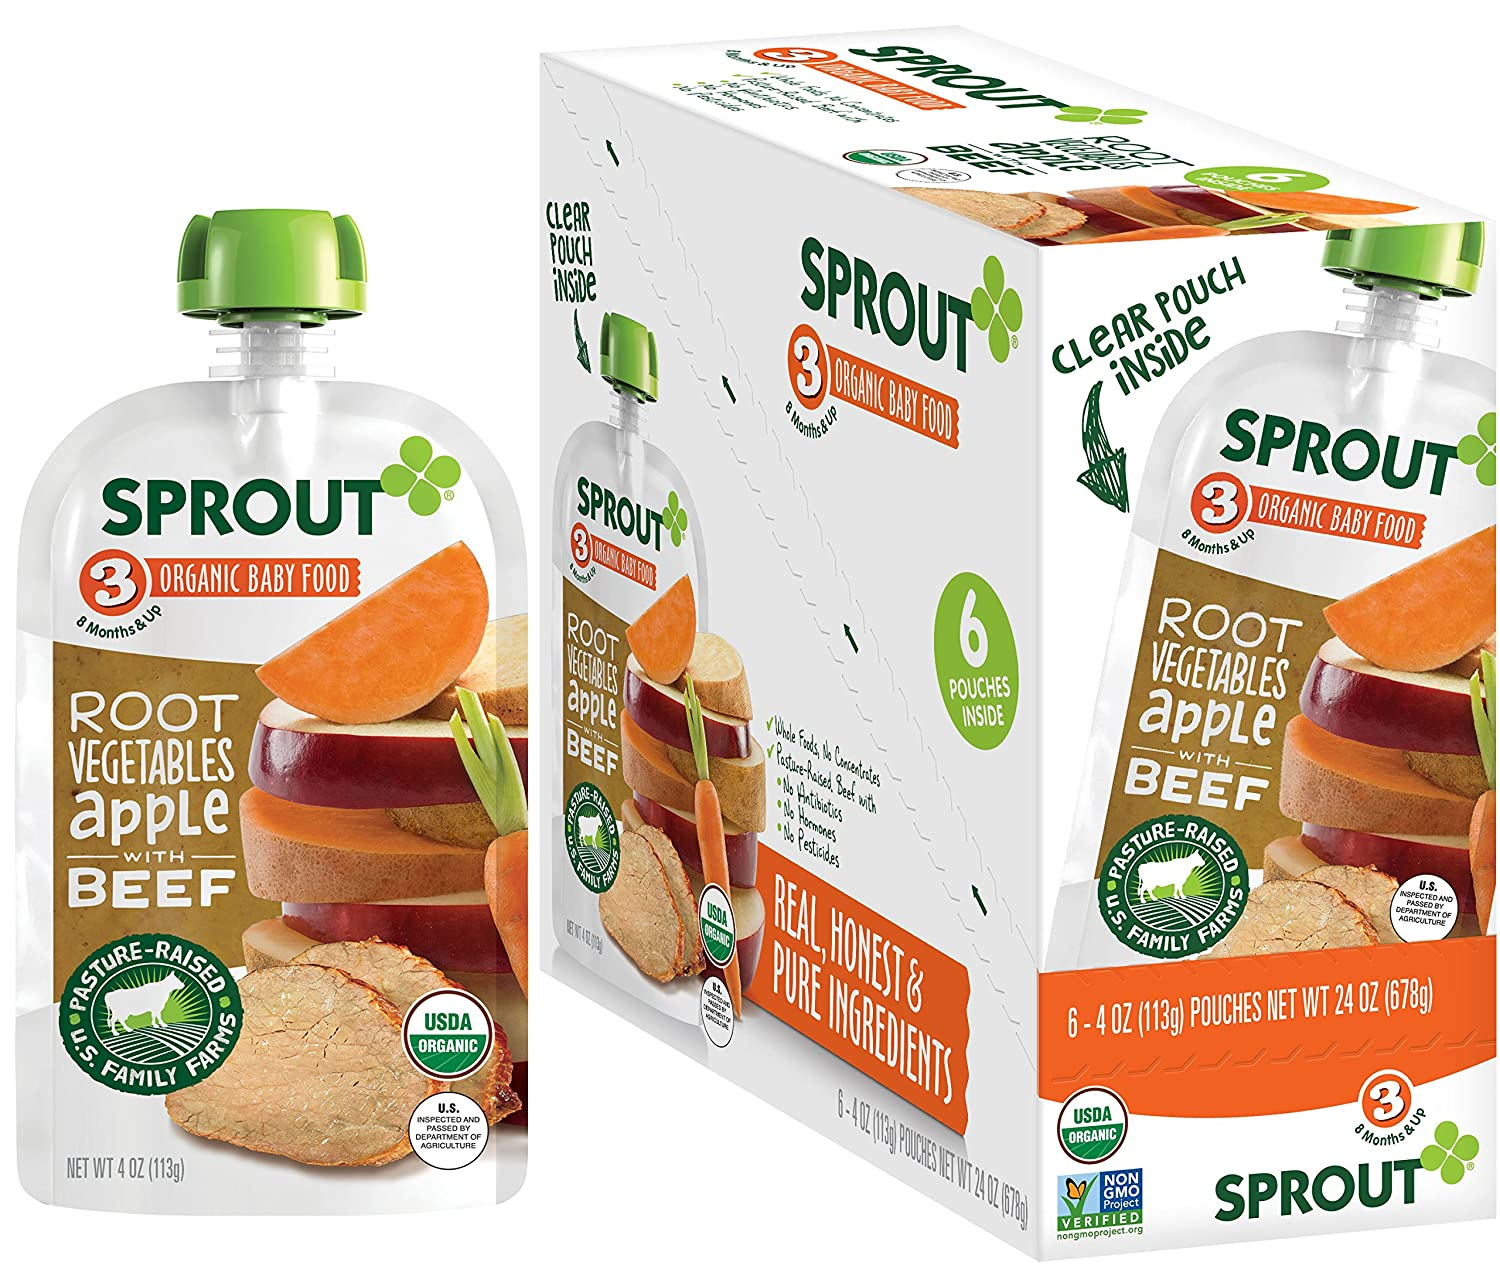 Sprout Organic Baby Food Pouches Stage 3, Root Vegetables Apple w/ Beef, 4 Ounce Pouches (Pack of 6)